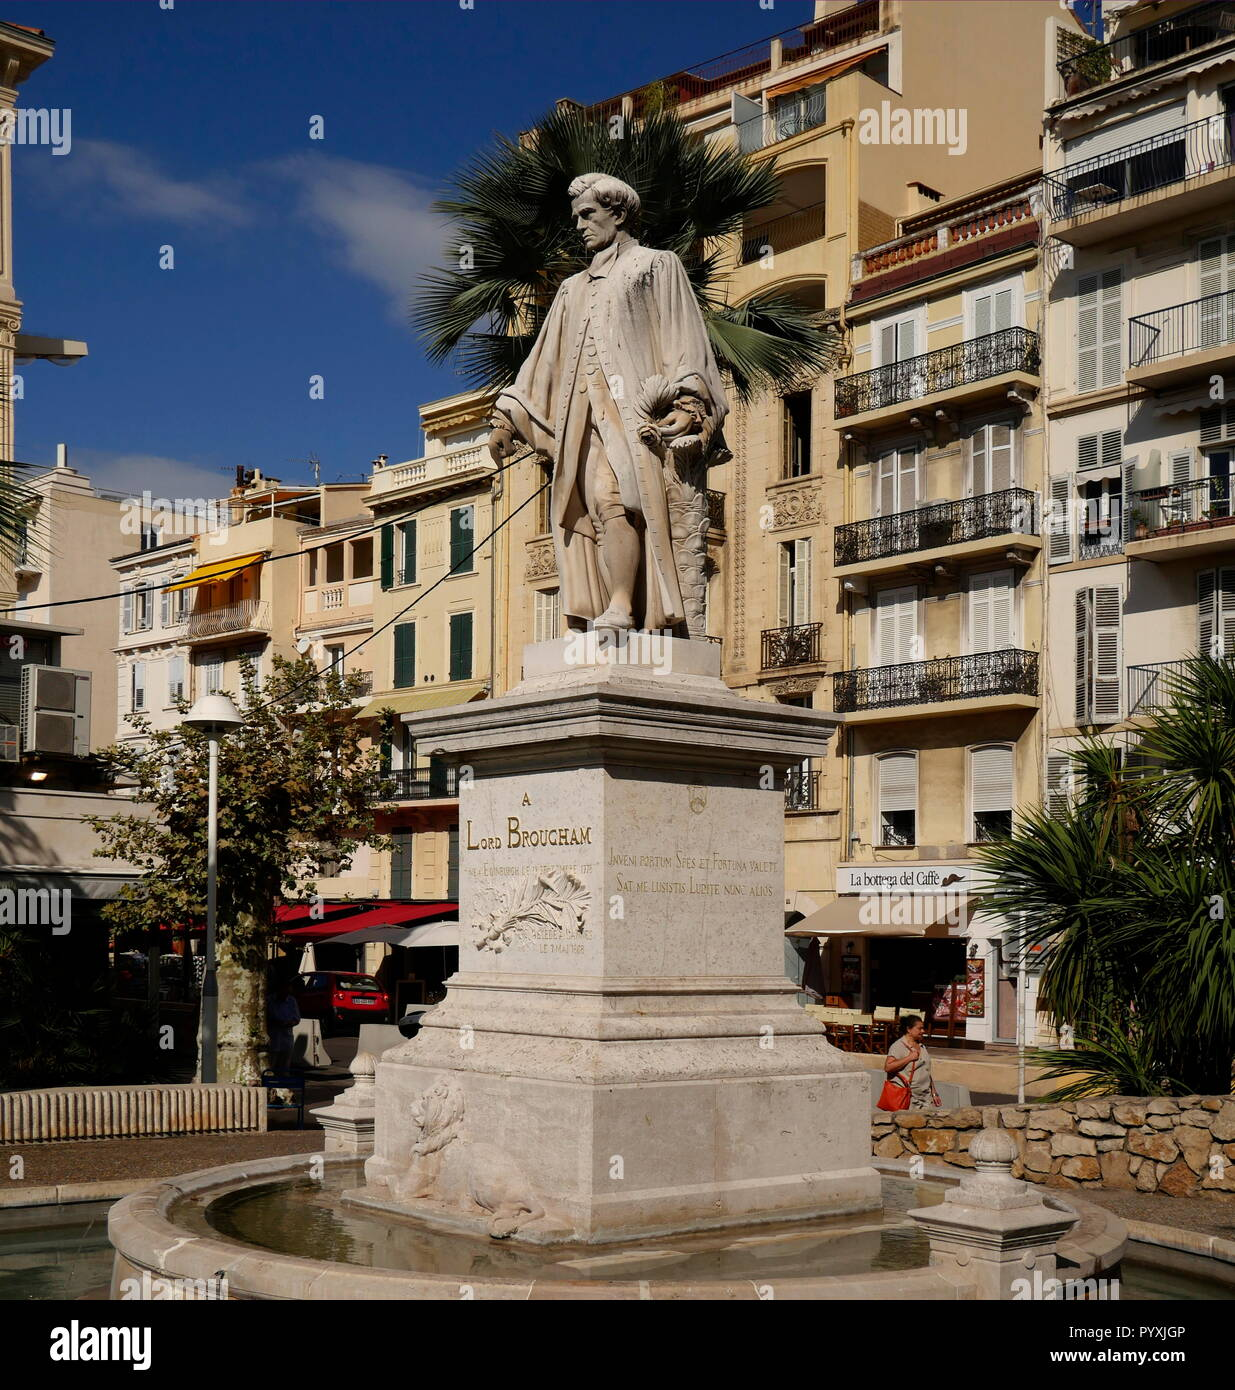 AJAXNETPHOTO. 2018. CANNES, FRANCE. - ENGLISH INFLUENCE - STATUE NEAR ALLEE DE LA LIBERTE OF ENGLISH ARISTOCRAT 1ST BARON LORD HENRY PETER BROUGHAM AND VAUX. PHOTO:JONATHAN EASTLAND/AJAX REF:GX8_182509_603 - Stock Image